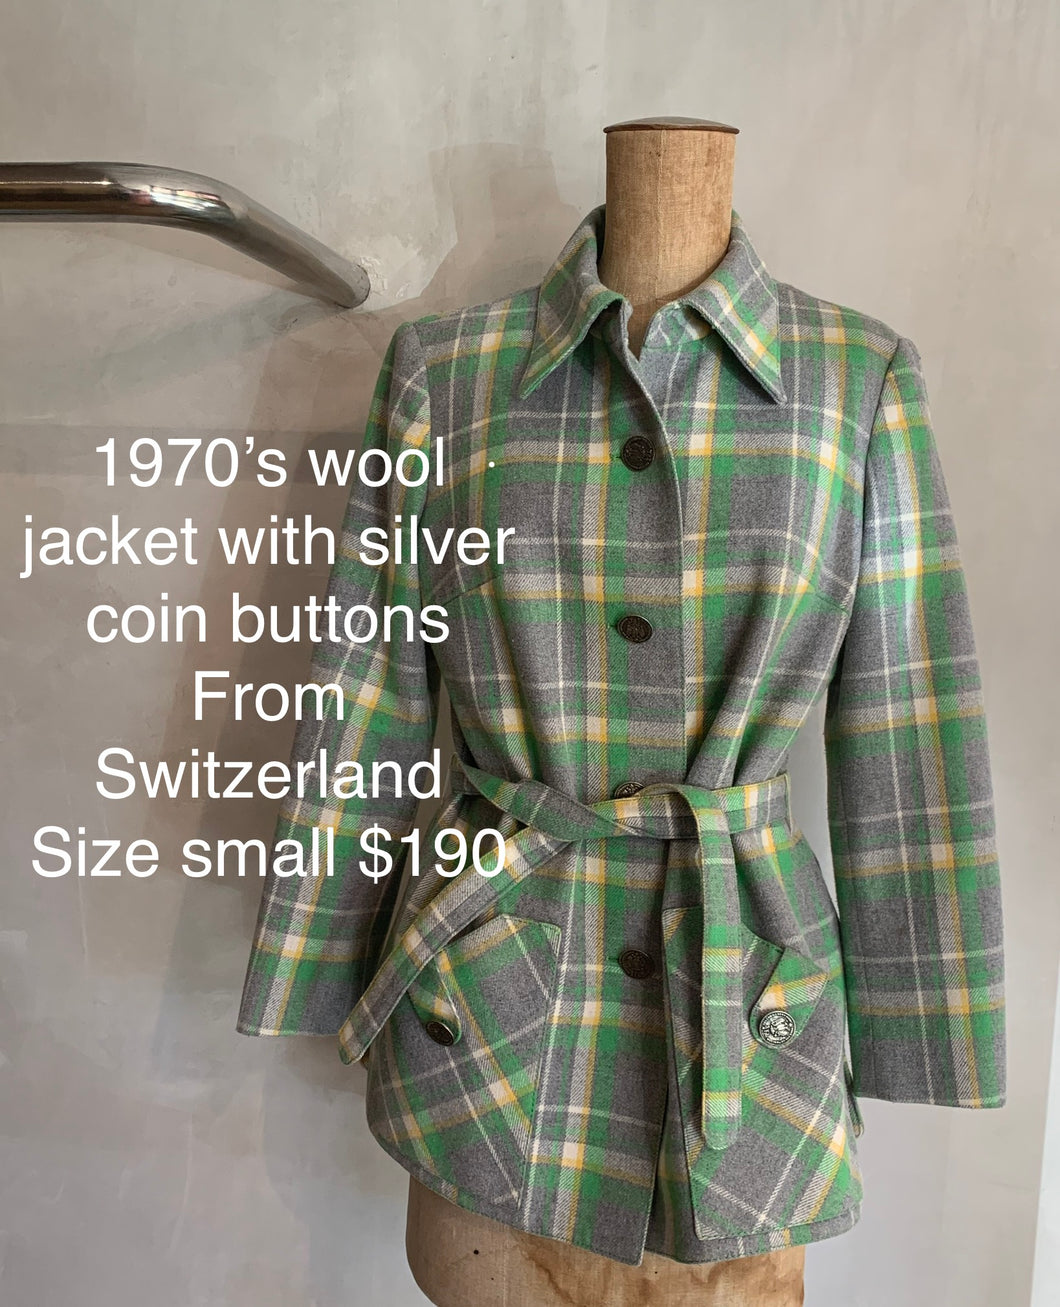 Vintage 1970's wool jacket with silver coin buttons